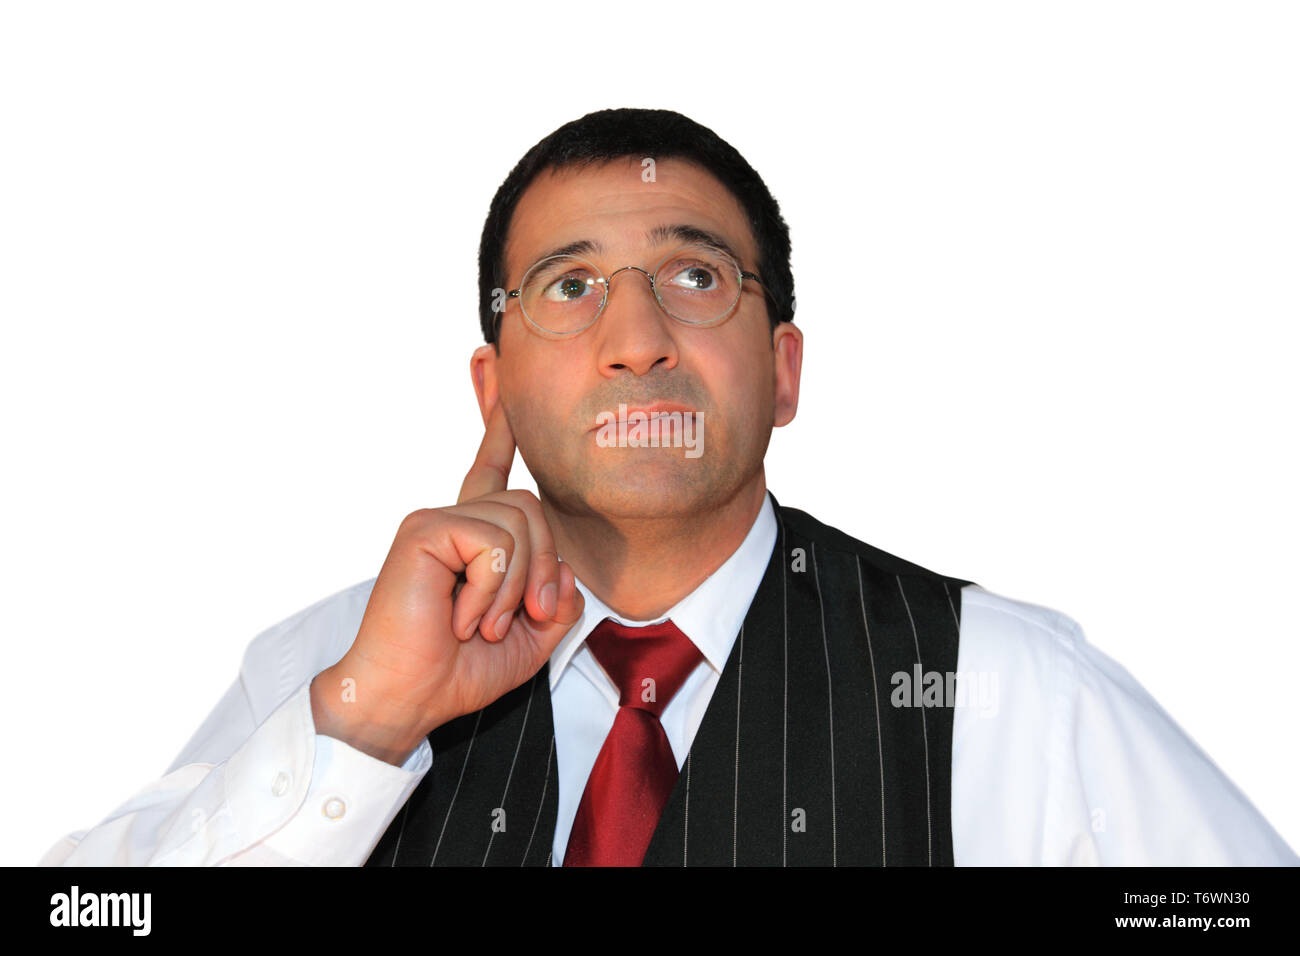 man considered - Stock Image